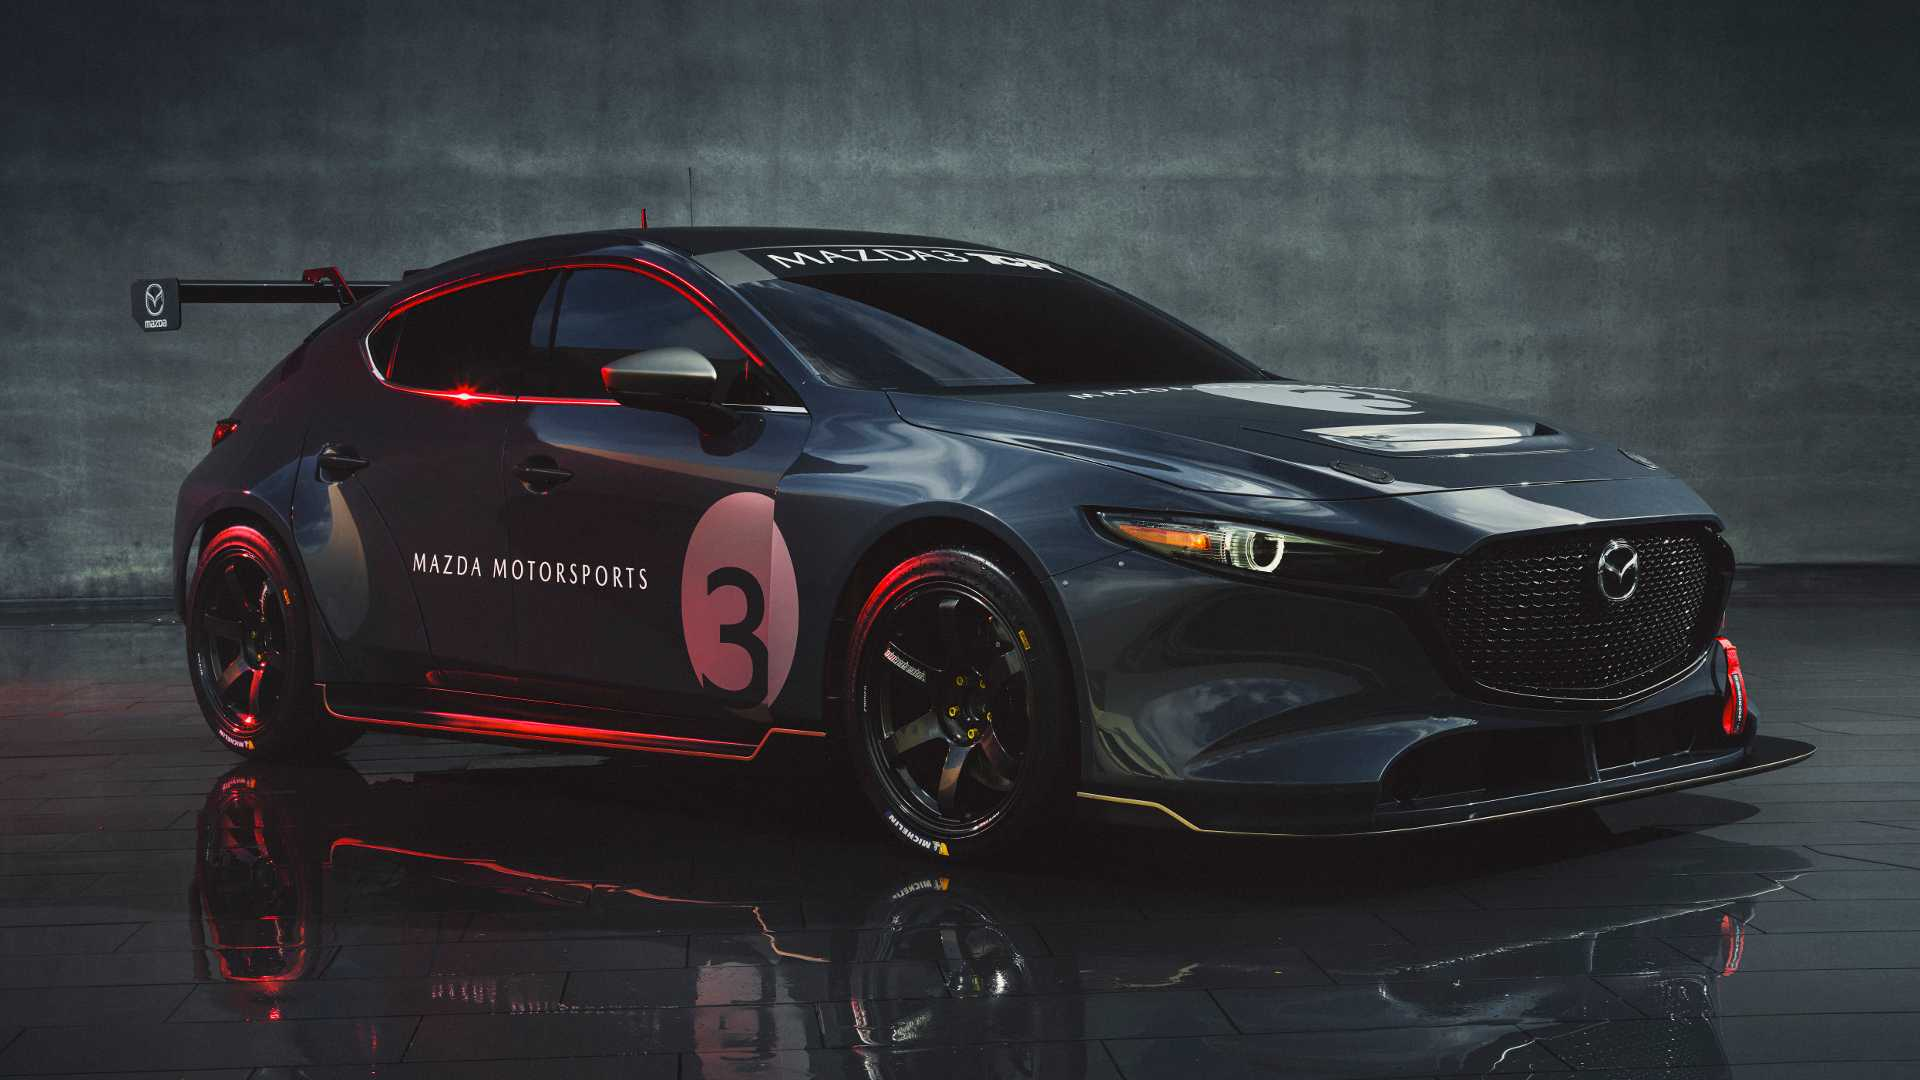 34 New 2020 Mazda 3 Turbo Concept